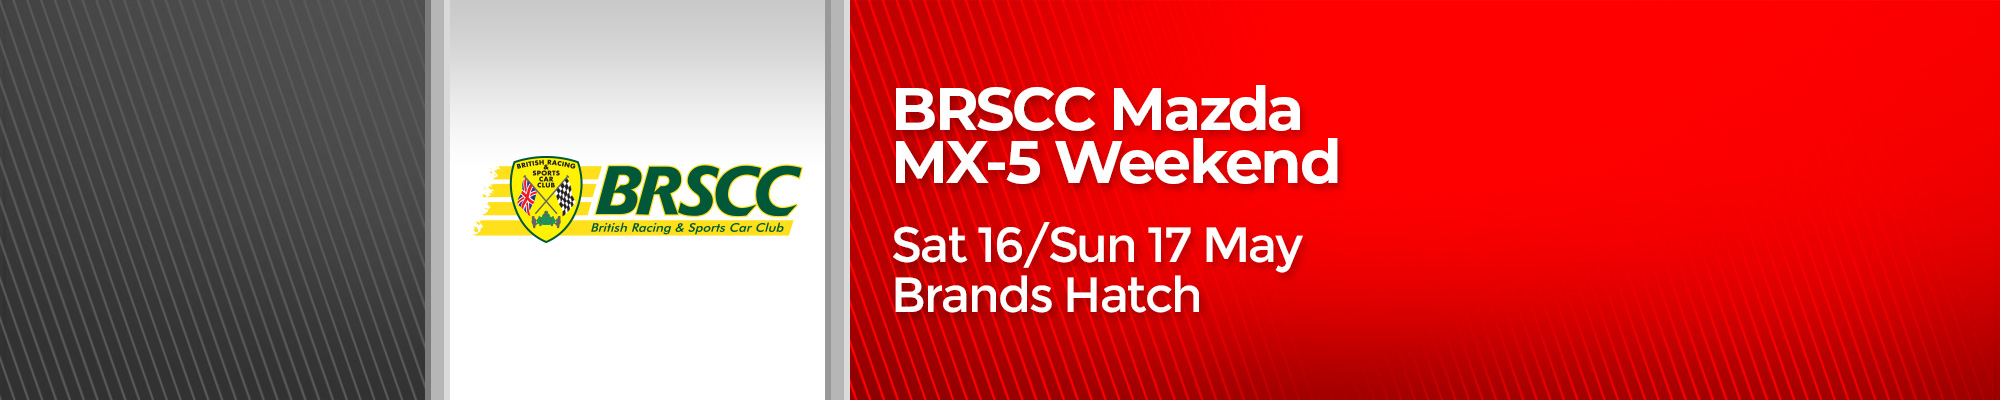 BRSCC Mazda MX-5 Race Weekend - POSTPONED